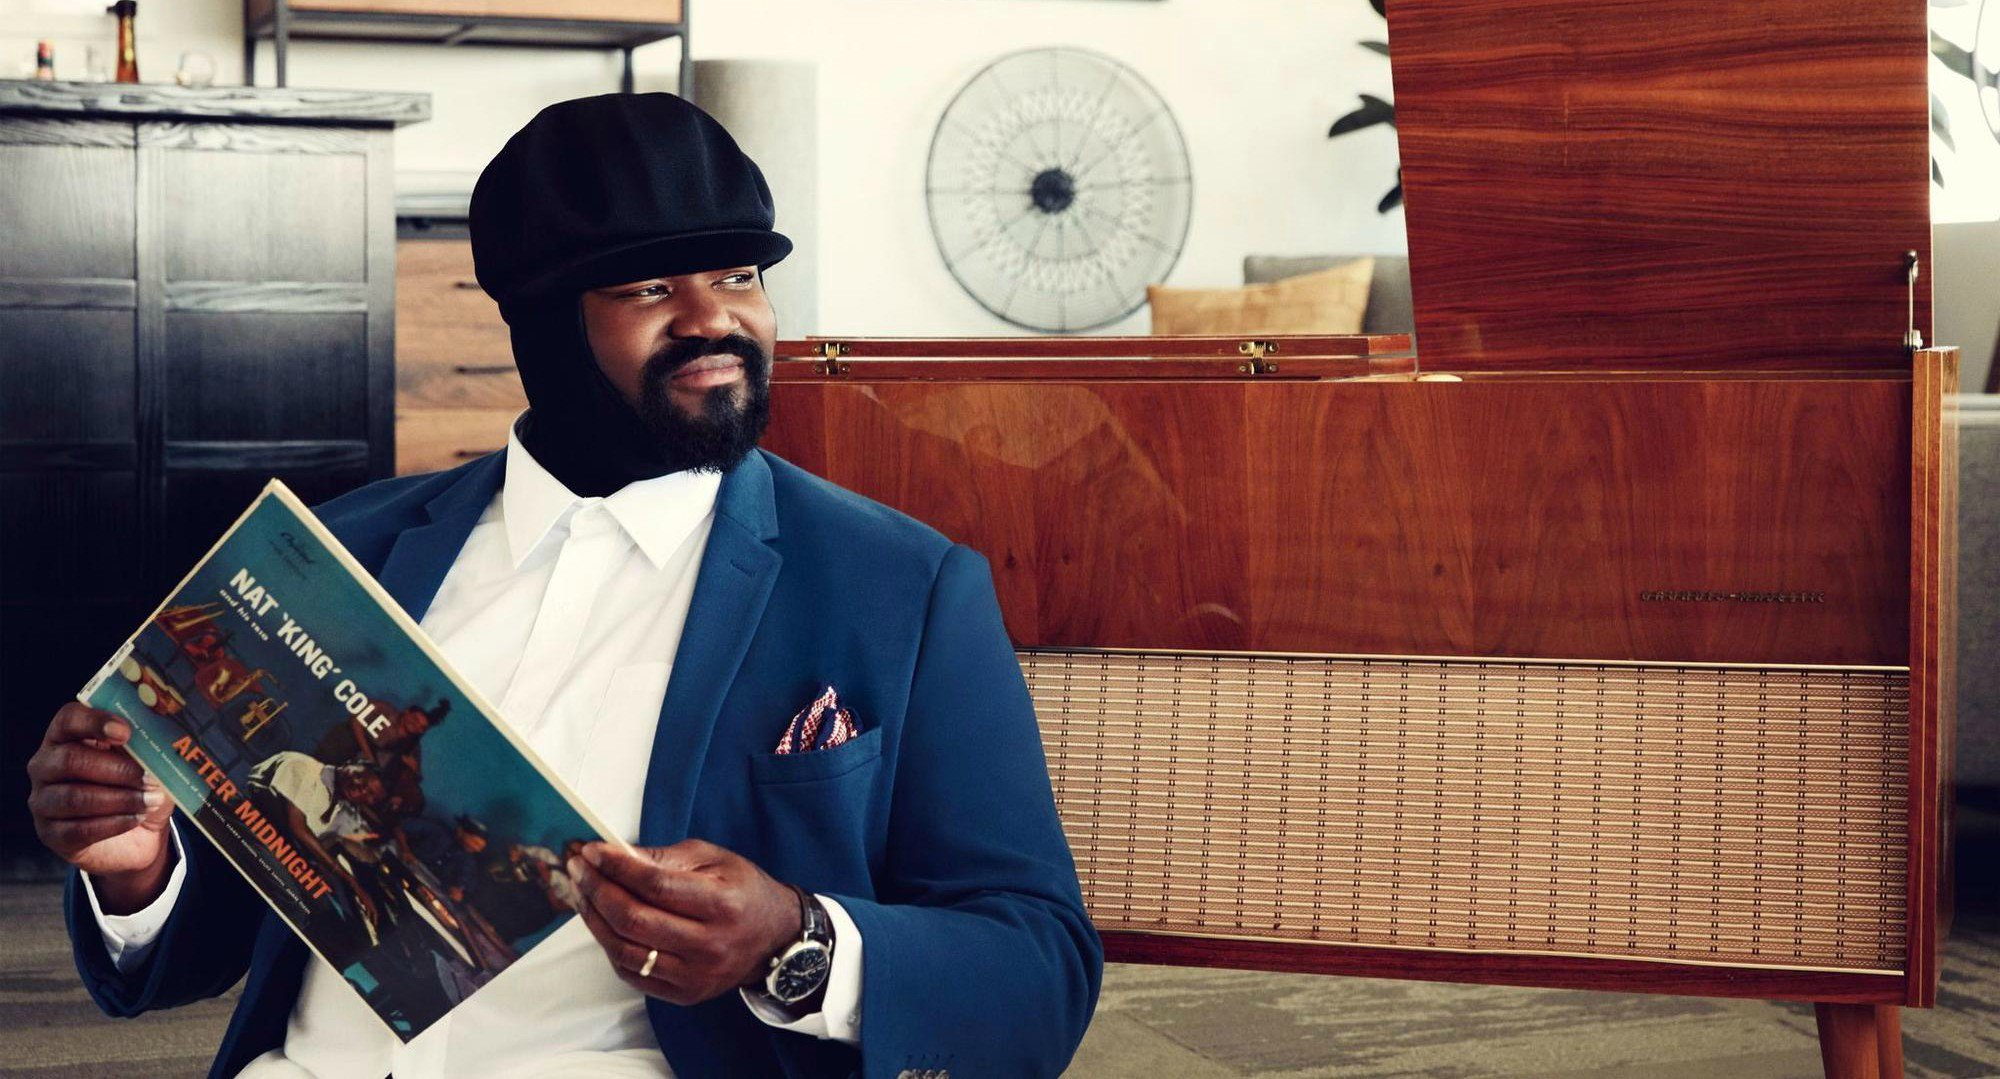 As we celebrate #NatKingCole today on what would have been his 100th birthday, we're revisiting @GregoryPorter's reflections on the icon's legacy | Read our interview by @Journalistorian + discover his five favorite @natkingcole albums: bit.ly/2Hrx9mi @bluenoterecords